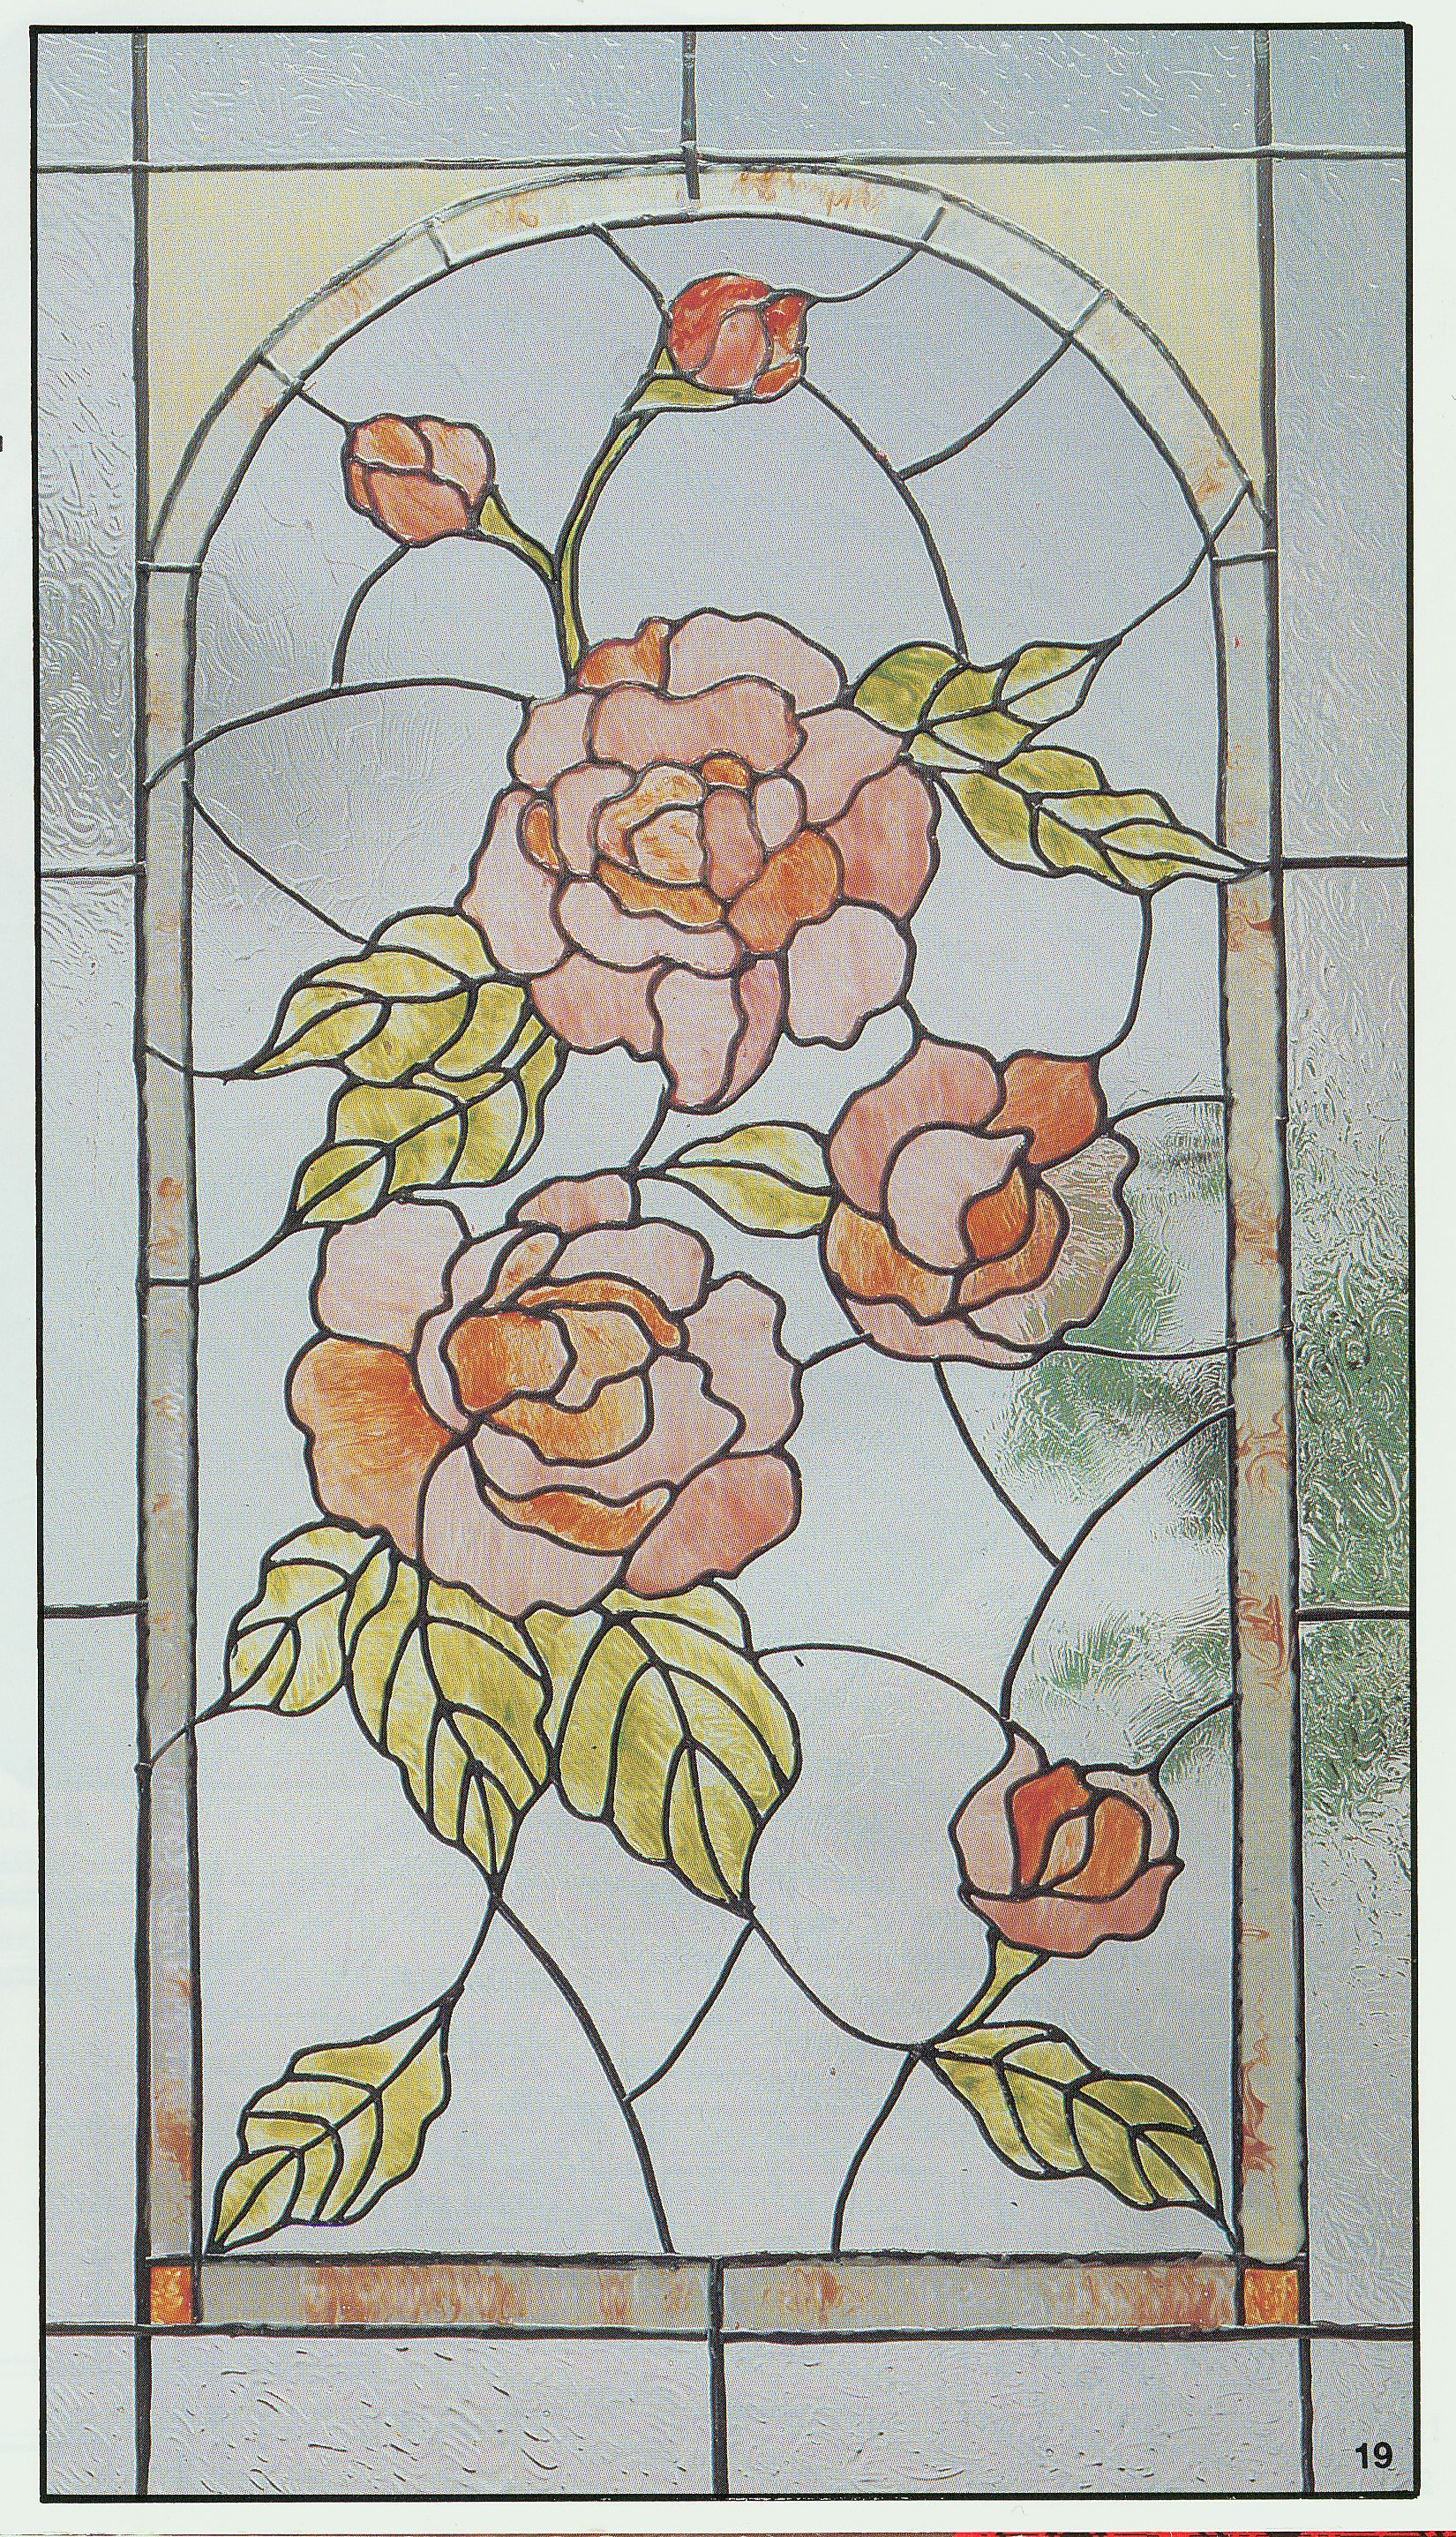 Pin stained glass pattern art nouveau roses on pinterest for Rose window design